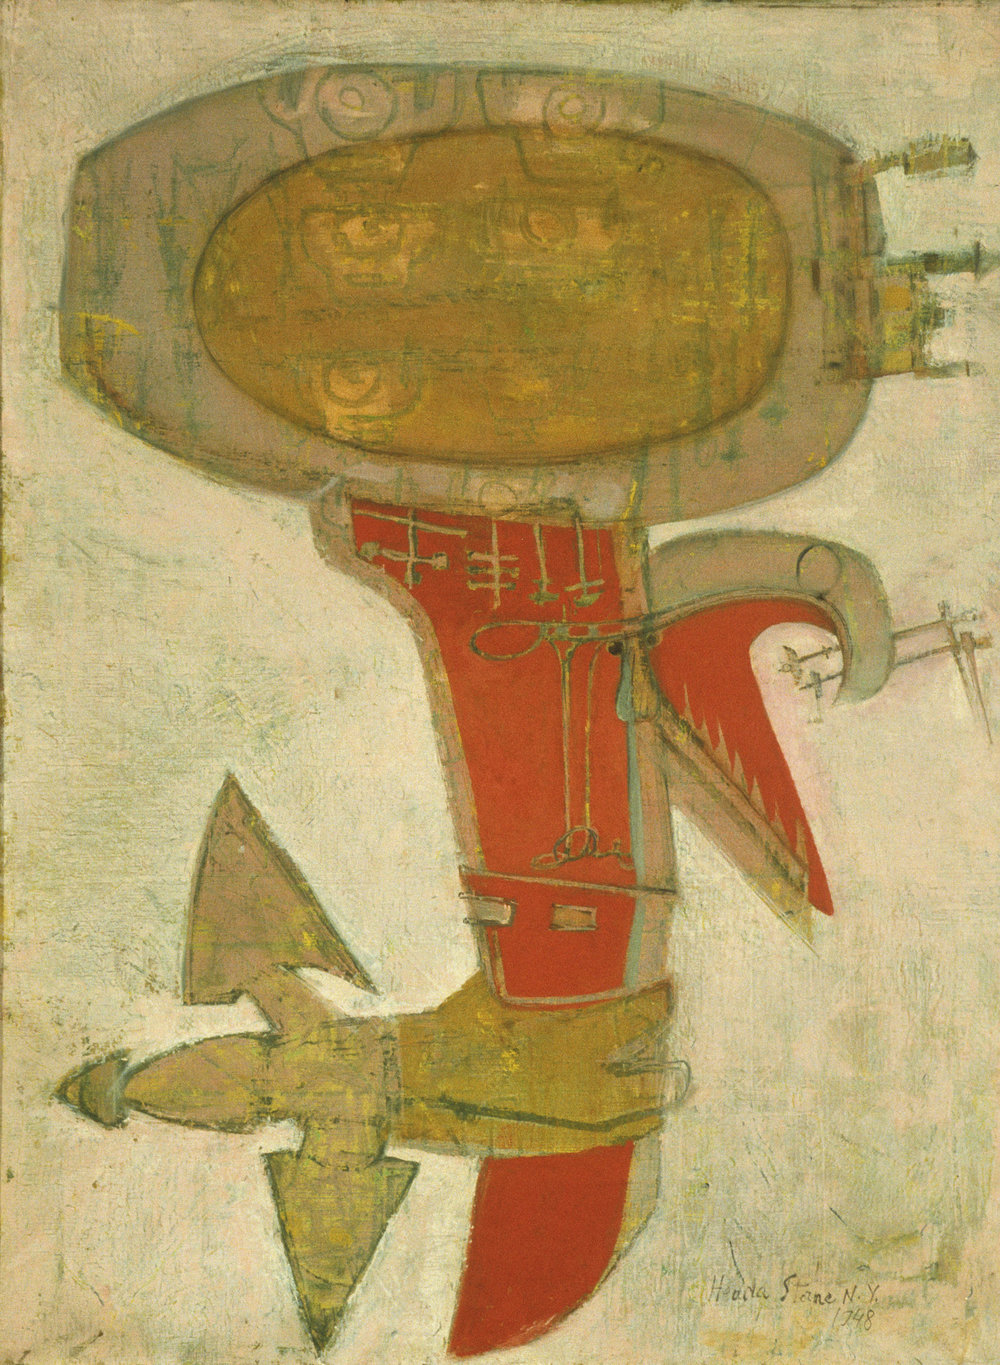 Hedda Sterne,Outboard Motor, 1948, Oil on canvas, 31 3/4 in. x 23 5/8 in., Collection of The Heckscher Museum of Art; Gift of the artist in memory of Betty Parsons, 1999.28